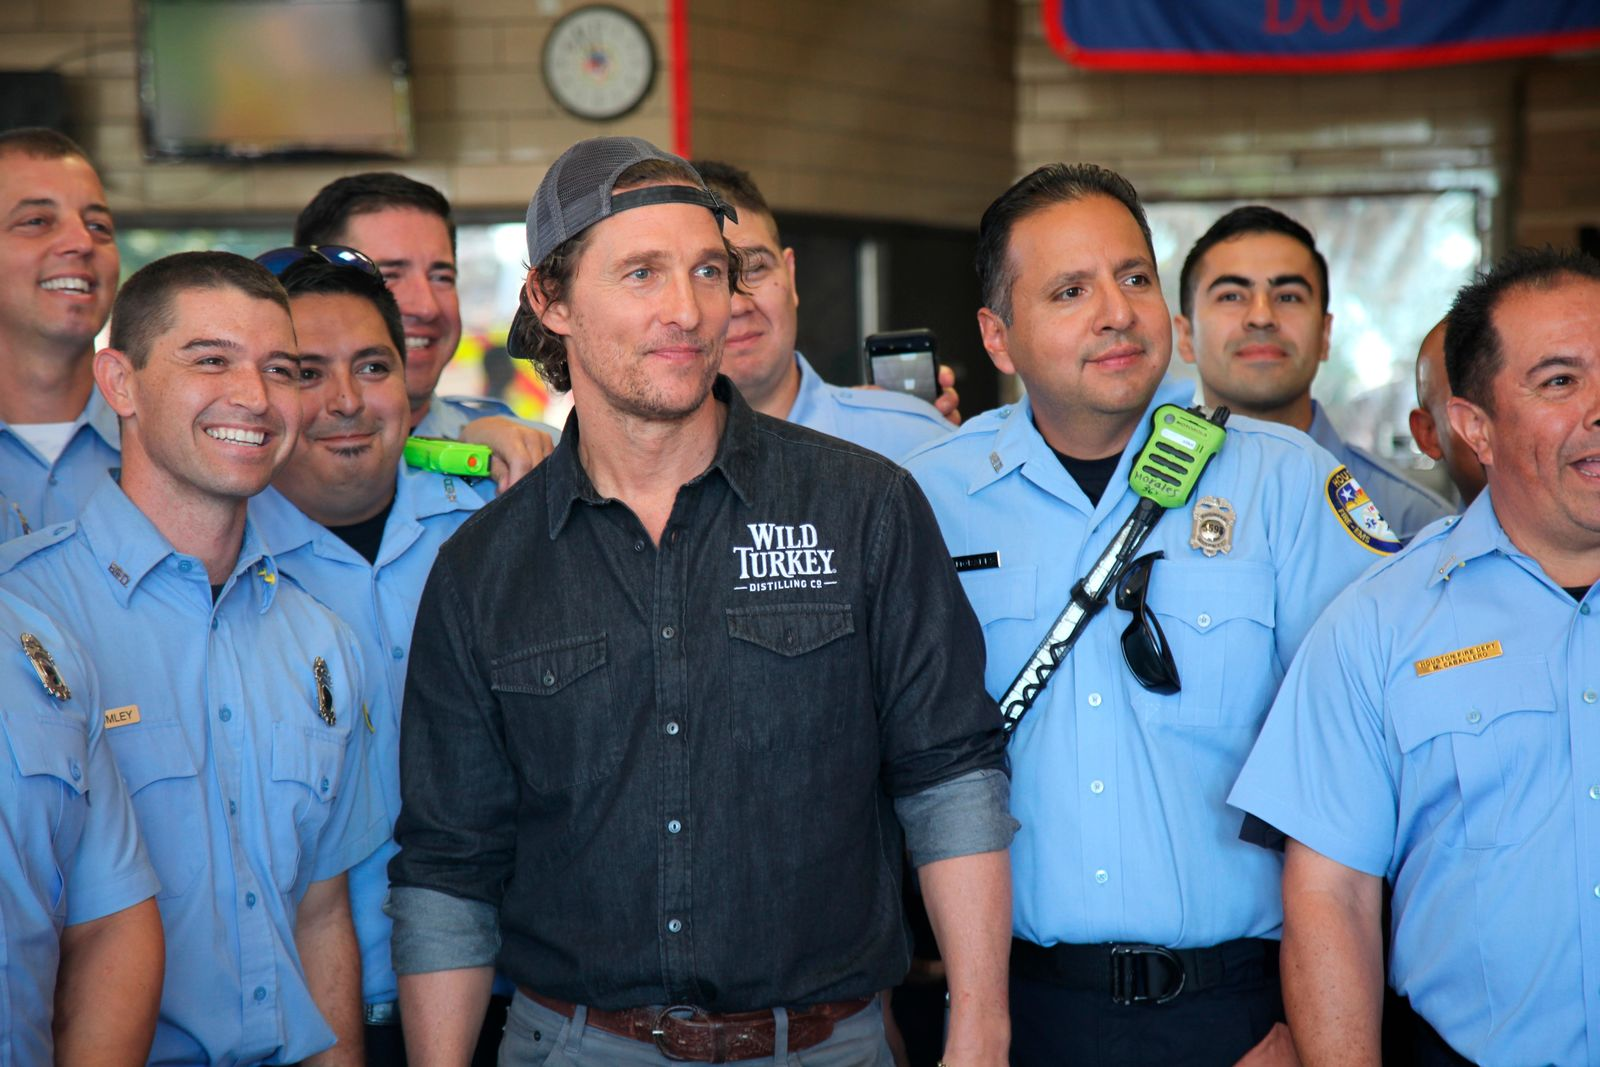 This Oct. 28, 2018 photo shows actor Matthew McConaughey posing with first responders in Houston as he  surprised them with catered lunches. (AP Photo/John Mone)